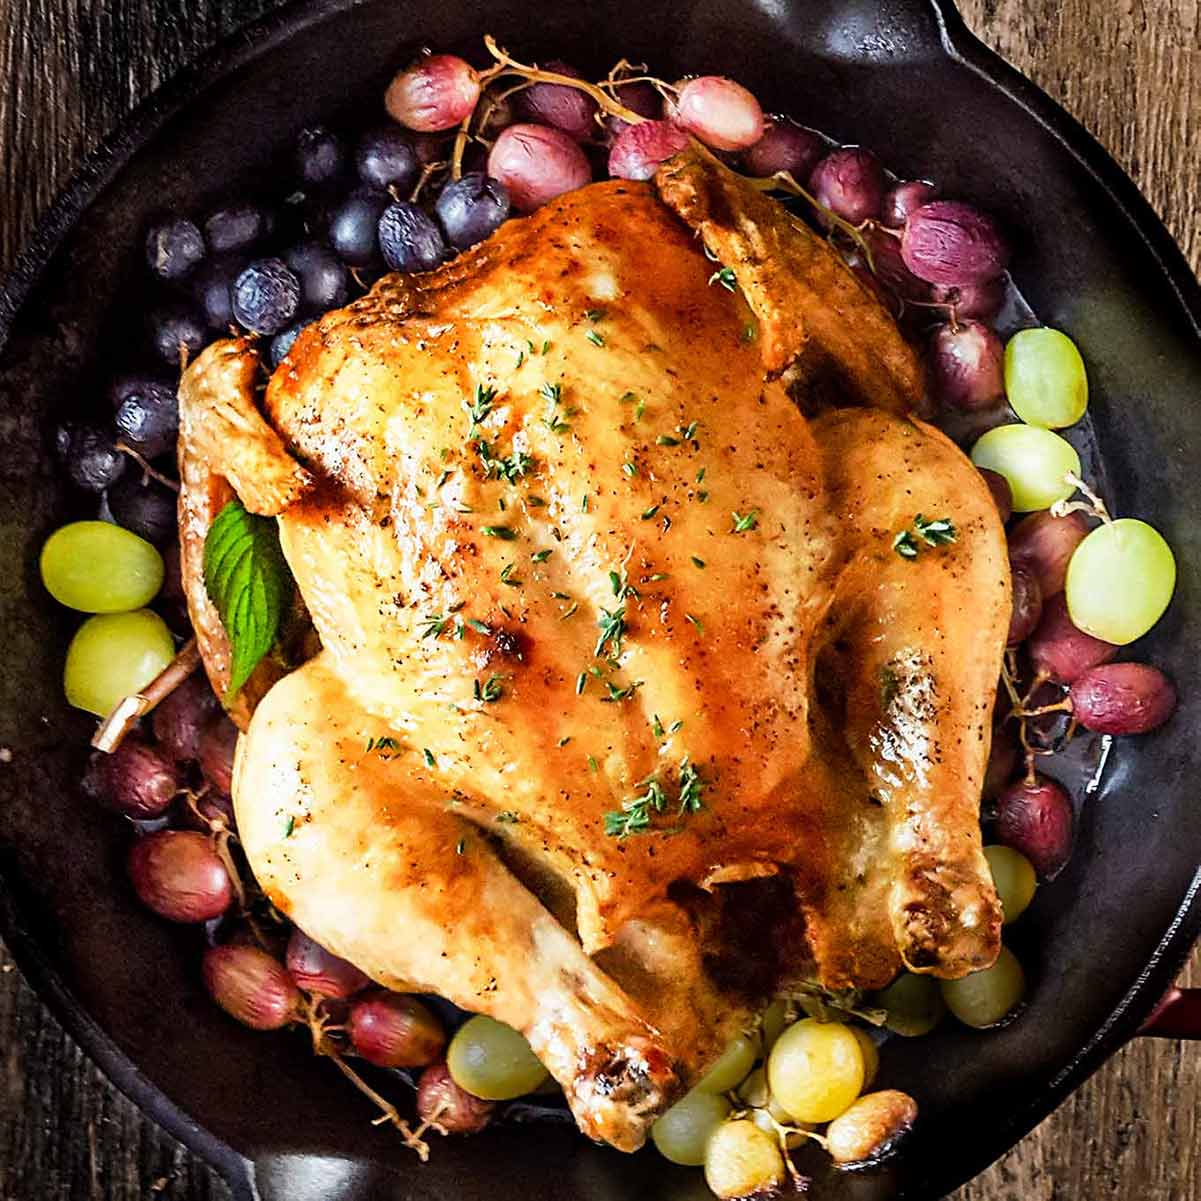 Roasted chicken with grapes, perfect for September